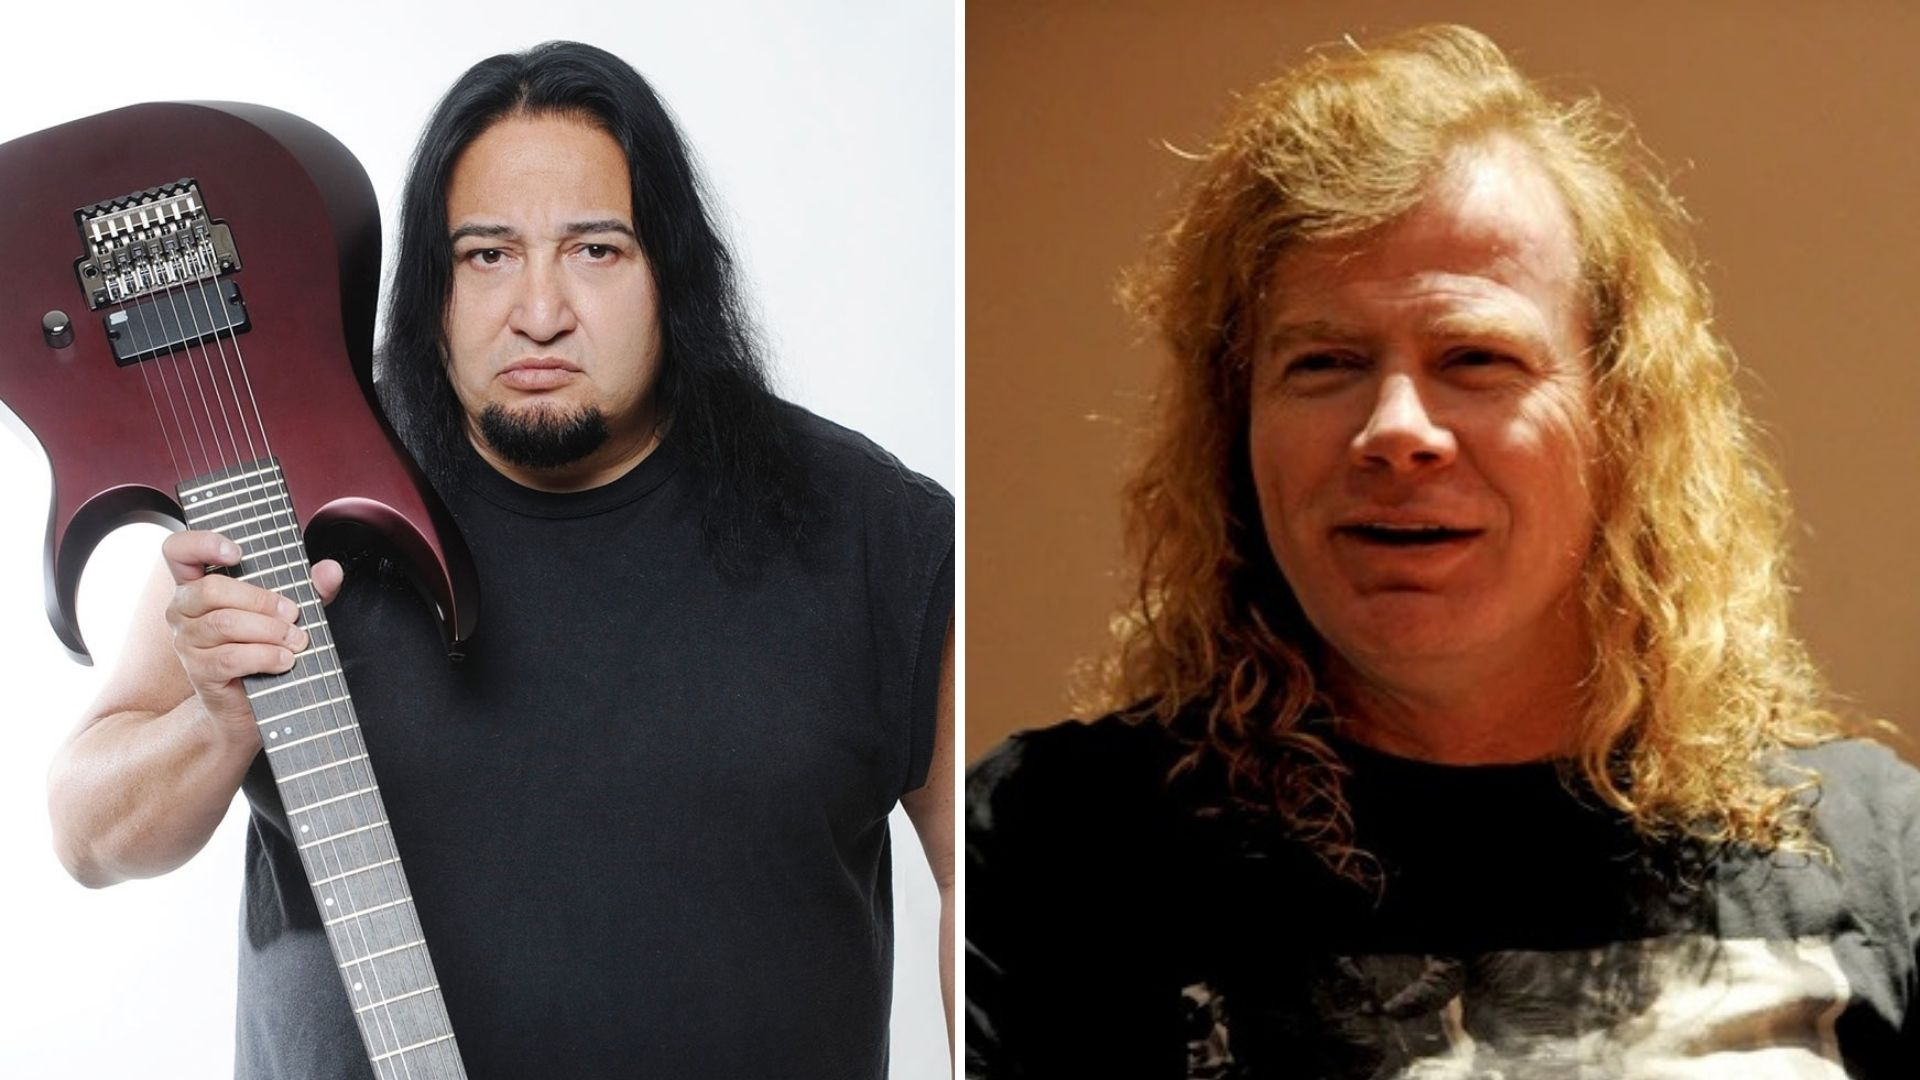 Dave Mustaine Dino Cazares sándwich